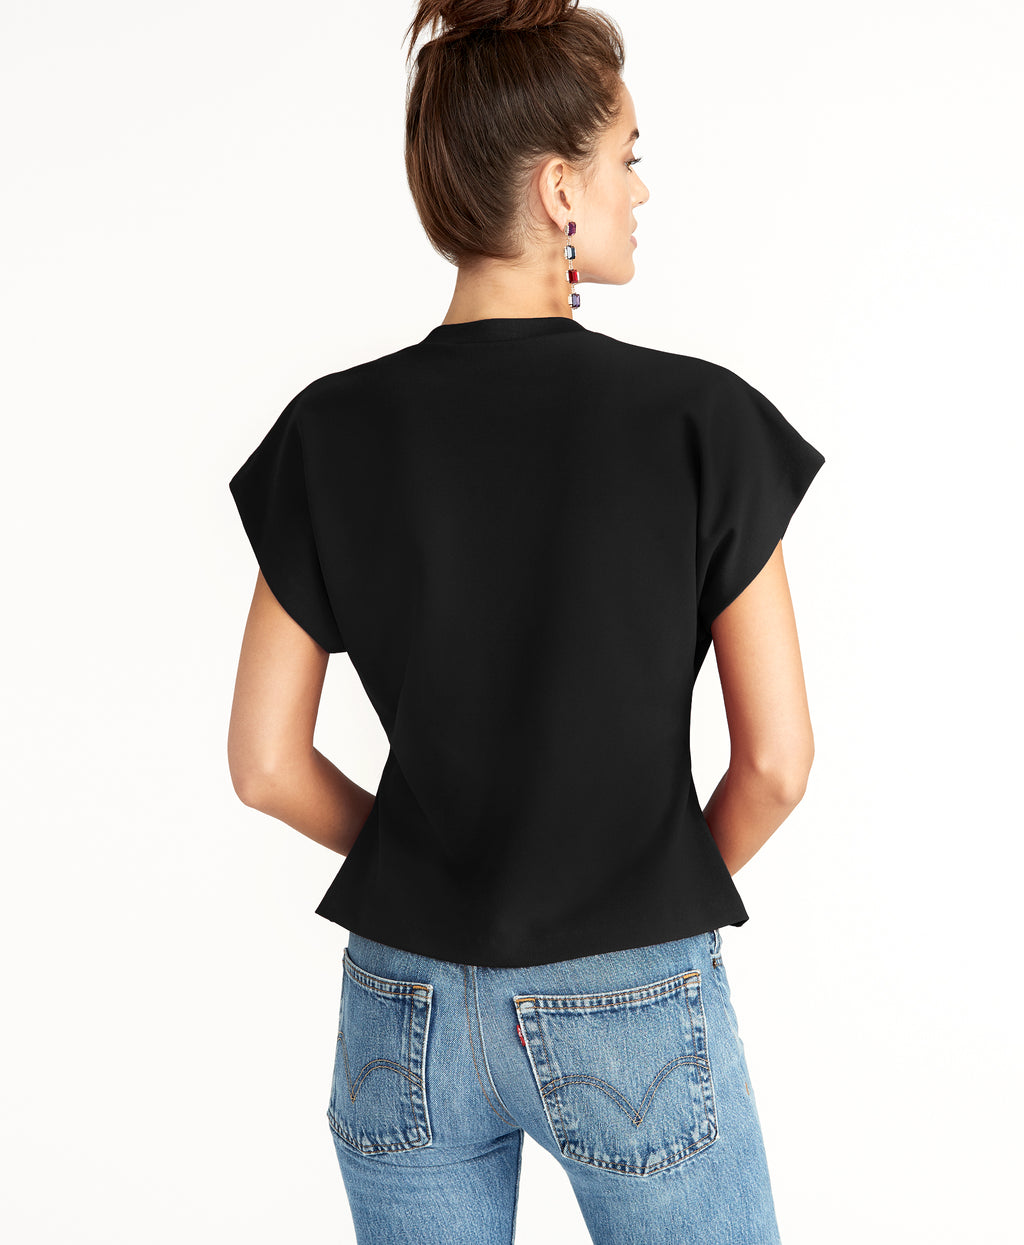 KARLIE TOP | BLACK